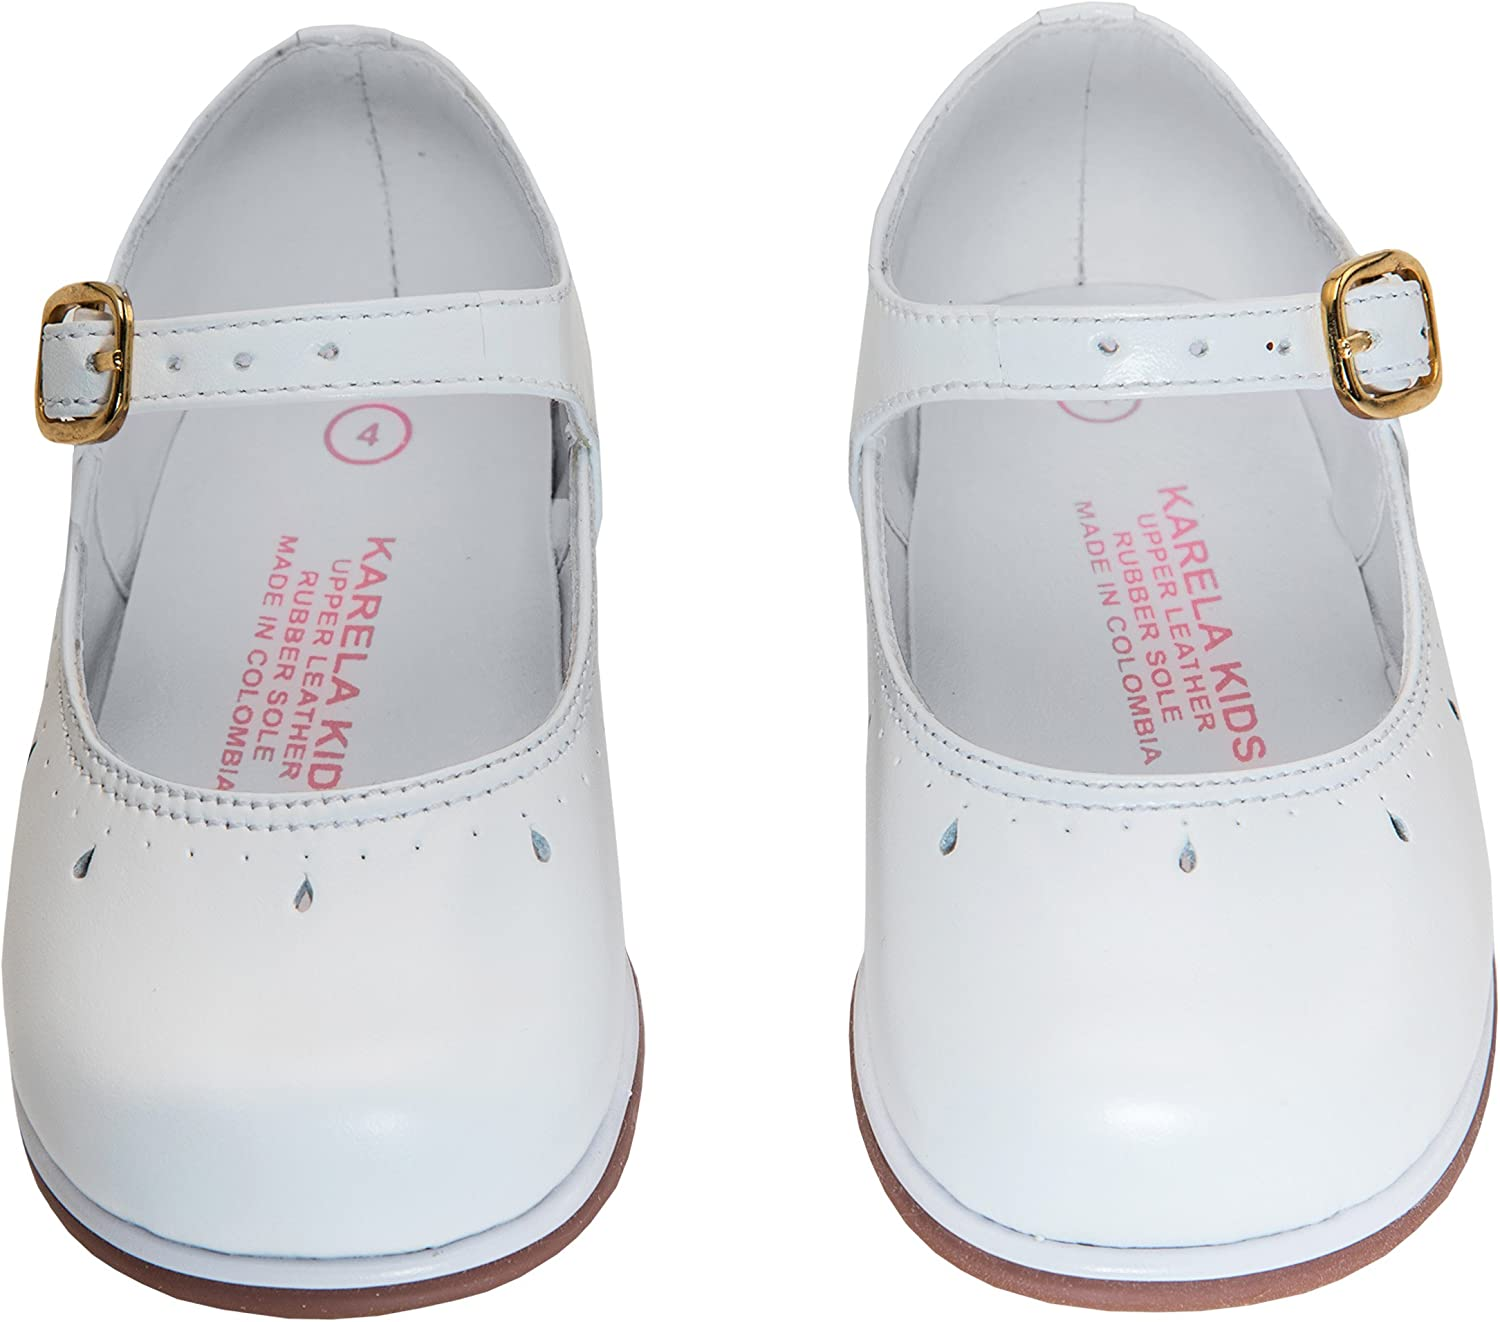 5 Karela Toddler Girls Shoes White Leather Mary Jane Princess Flat with Anti Skid Rubber Sole